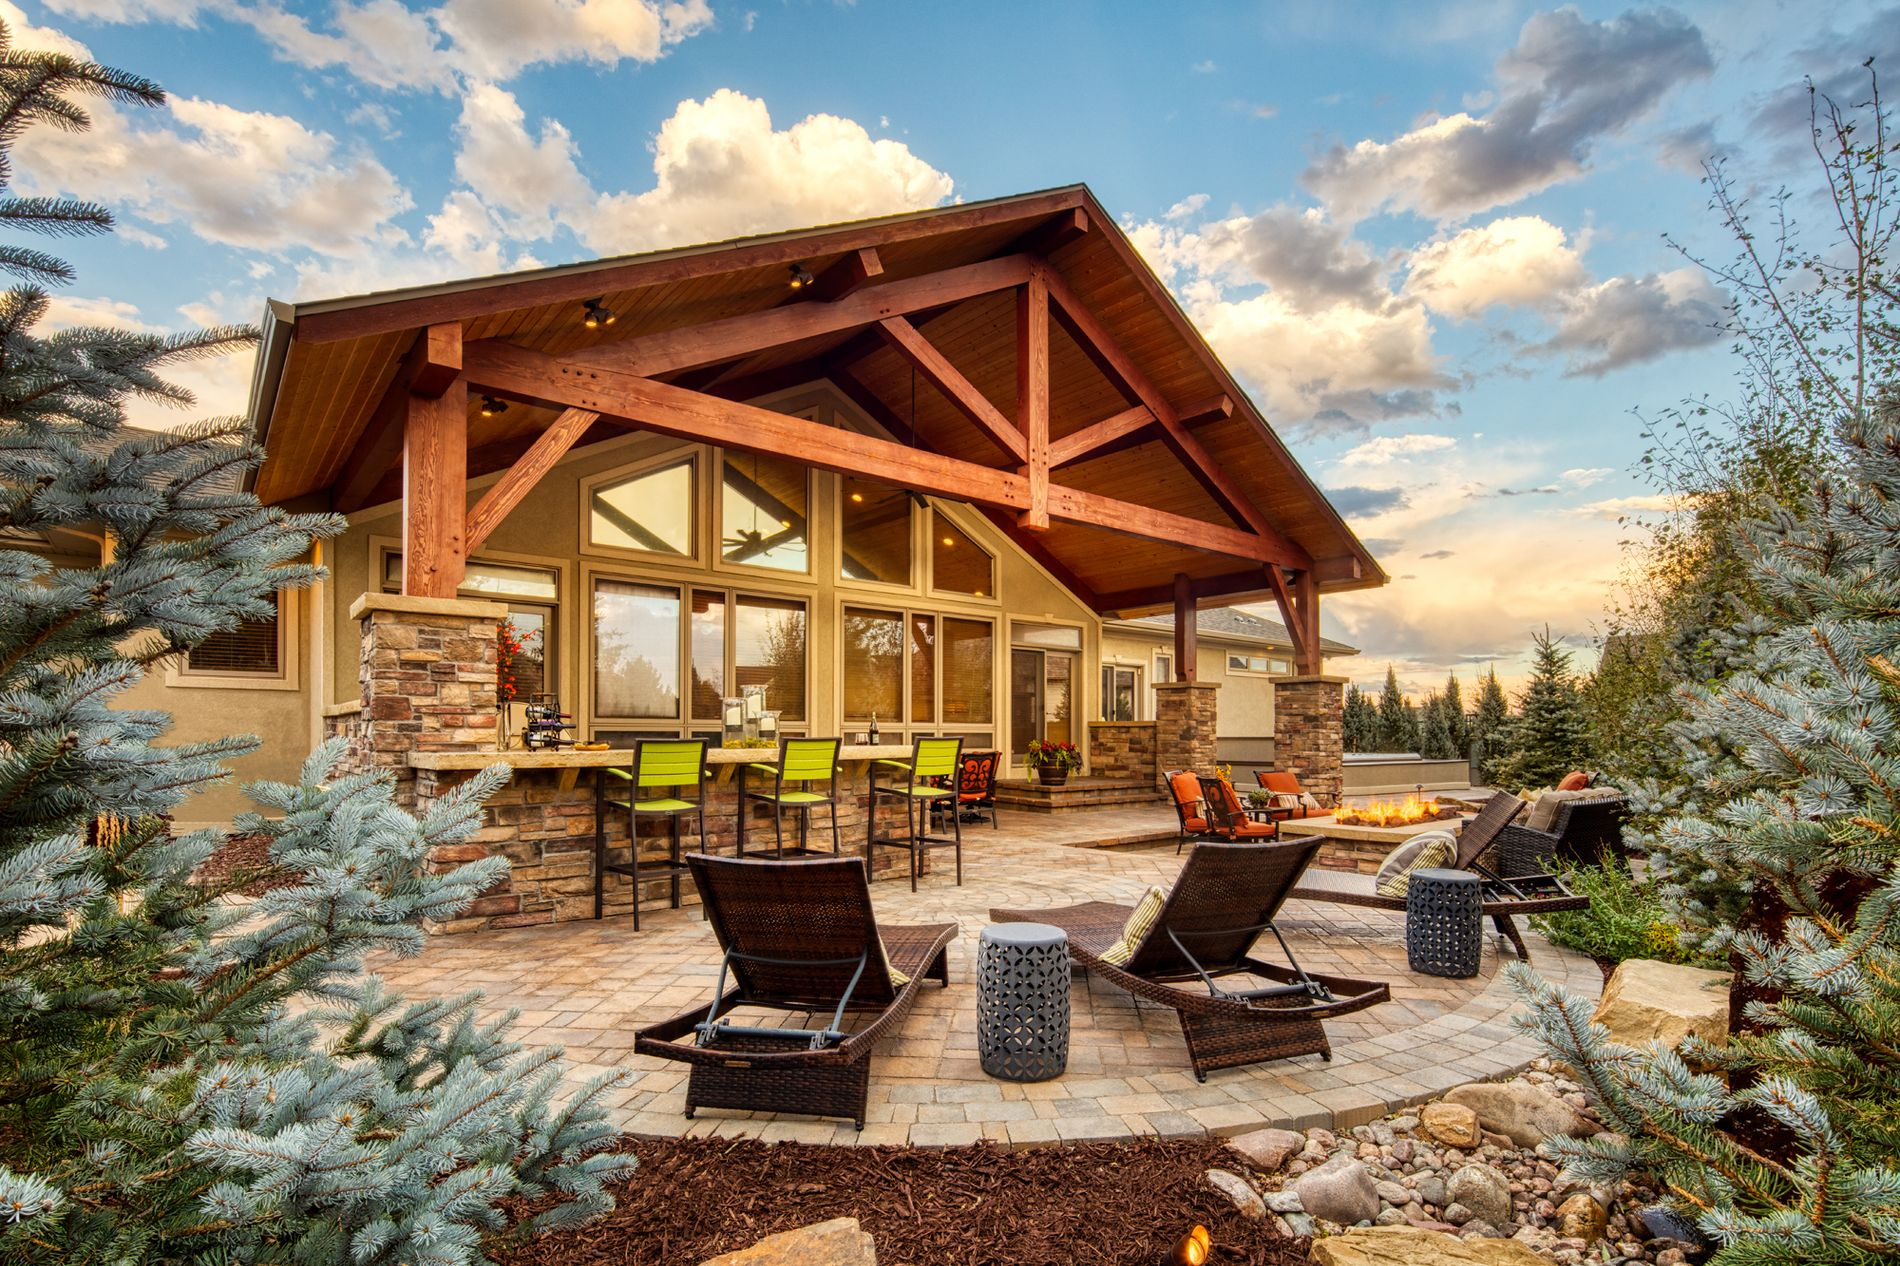 Outdoor living patio with covered roof